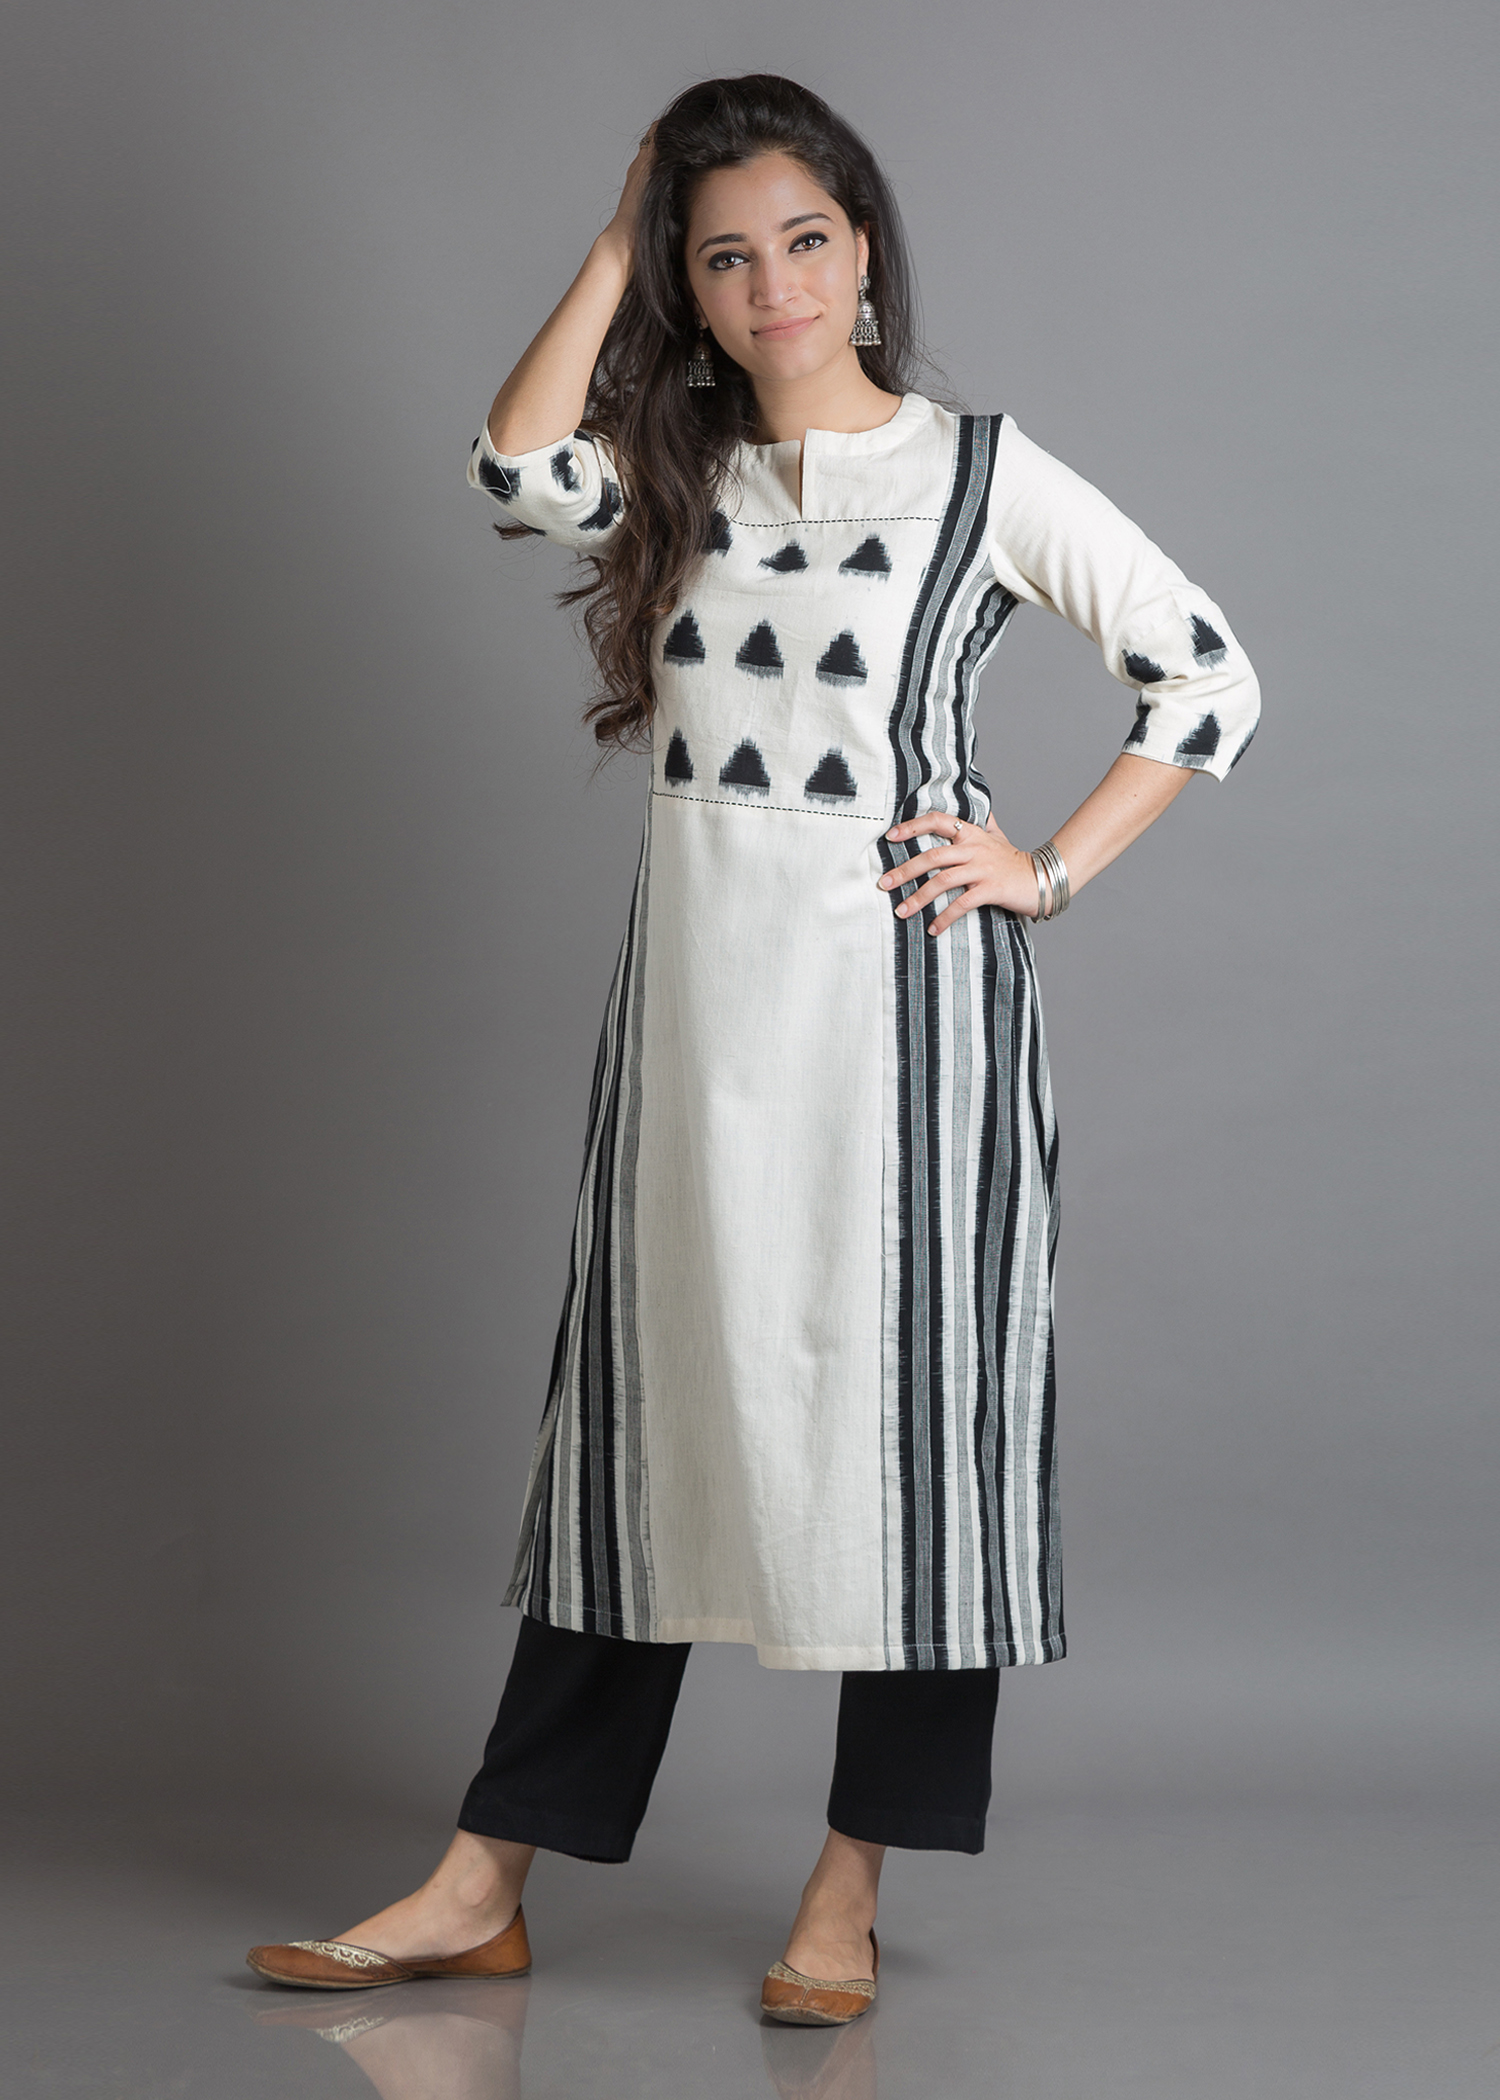 Off-White & Black Handwoven Cotton Kurta with Ikat Yoke